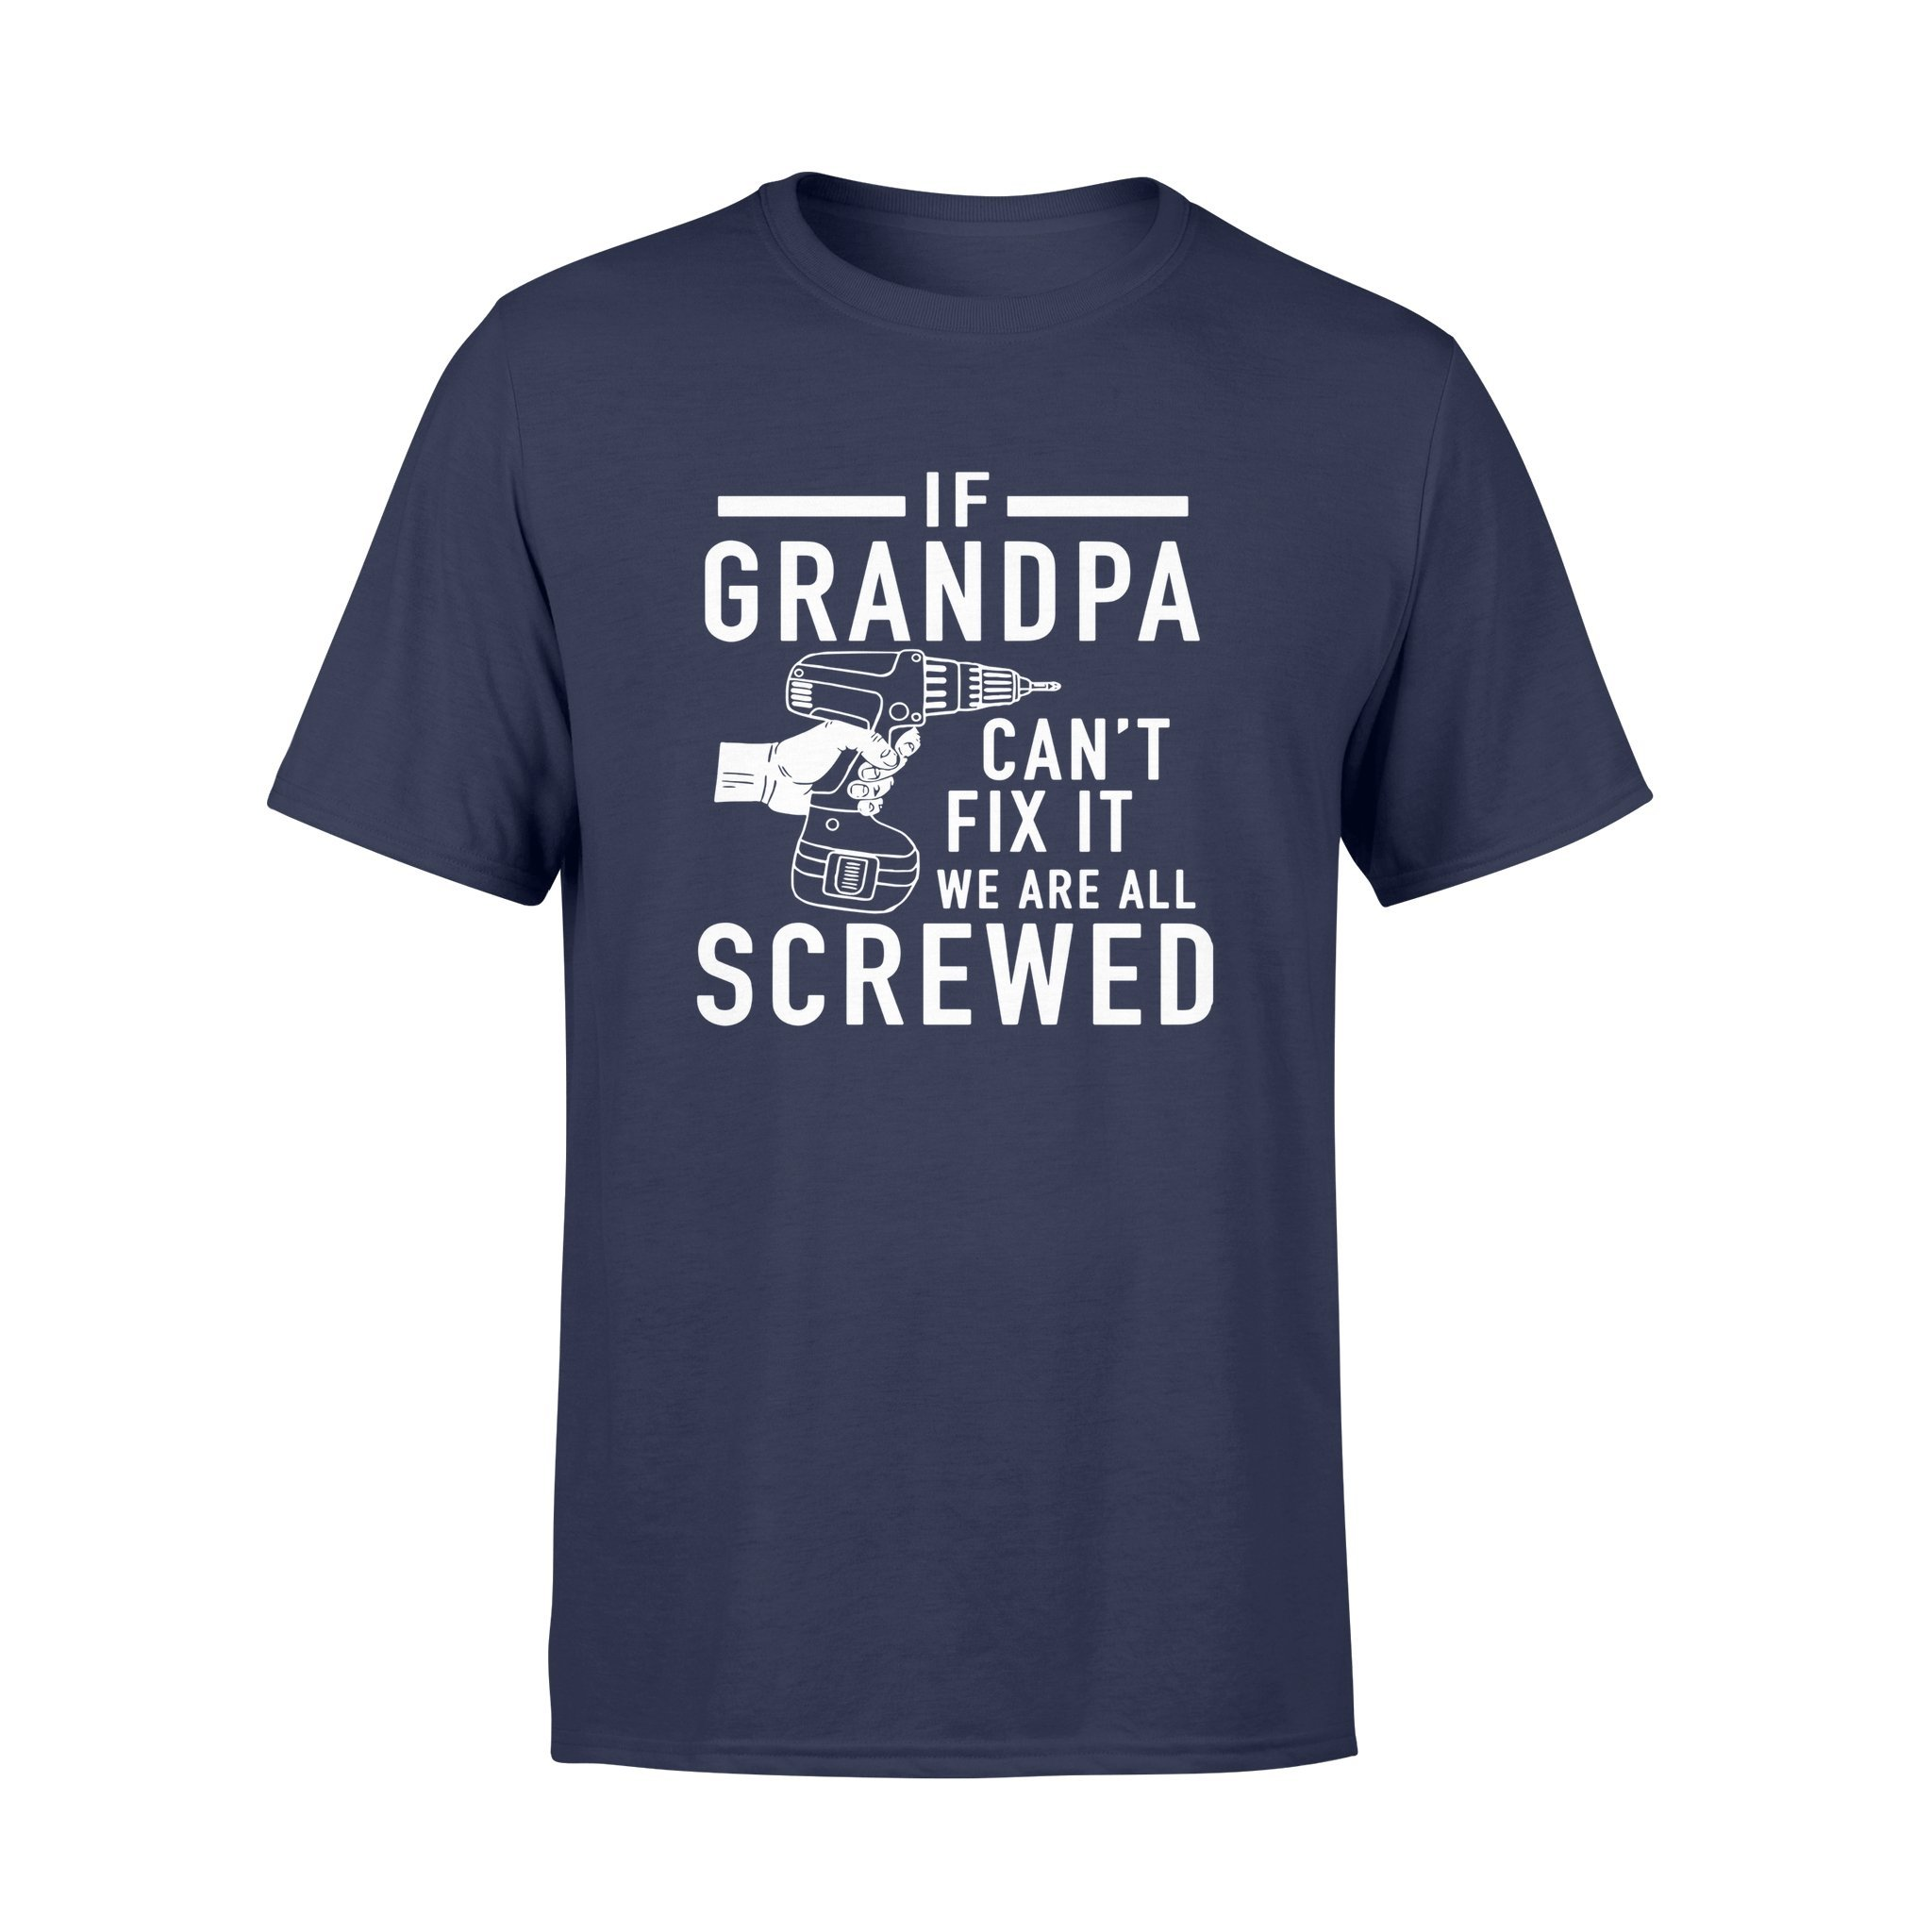 grandpa screwed T shirt - Gifts for grandpa